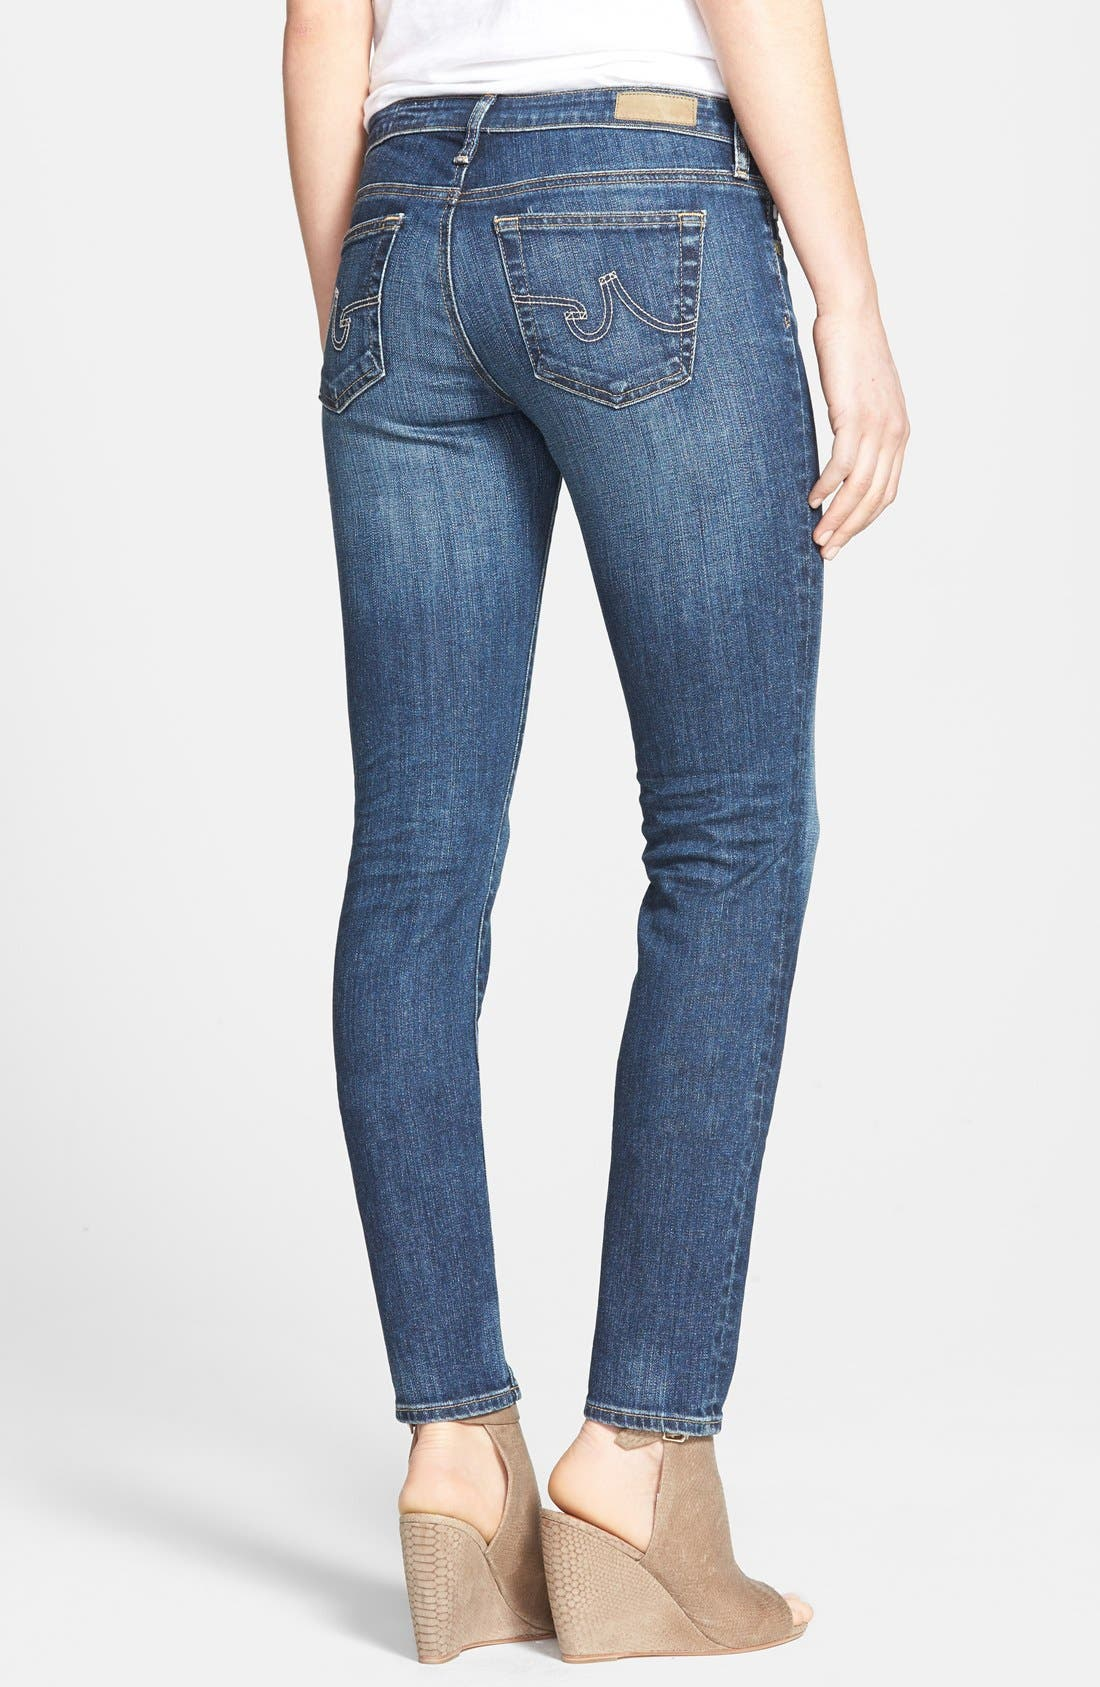 Alternate Image 2  - AG 'The Stilt' Cigarette Leg Stretch Jeans (Eleven Year Intrigue) (Nordstrom Exclusive)